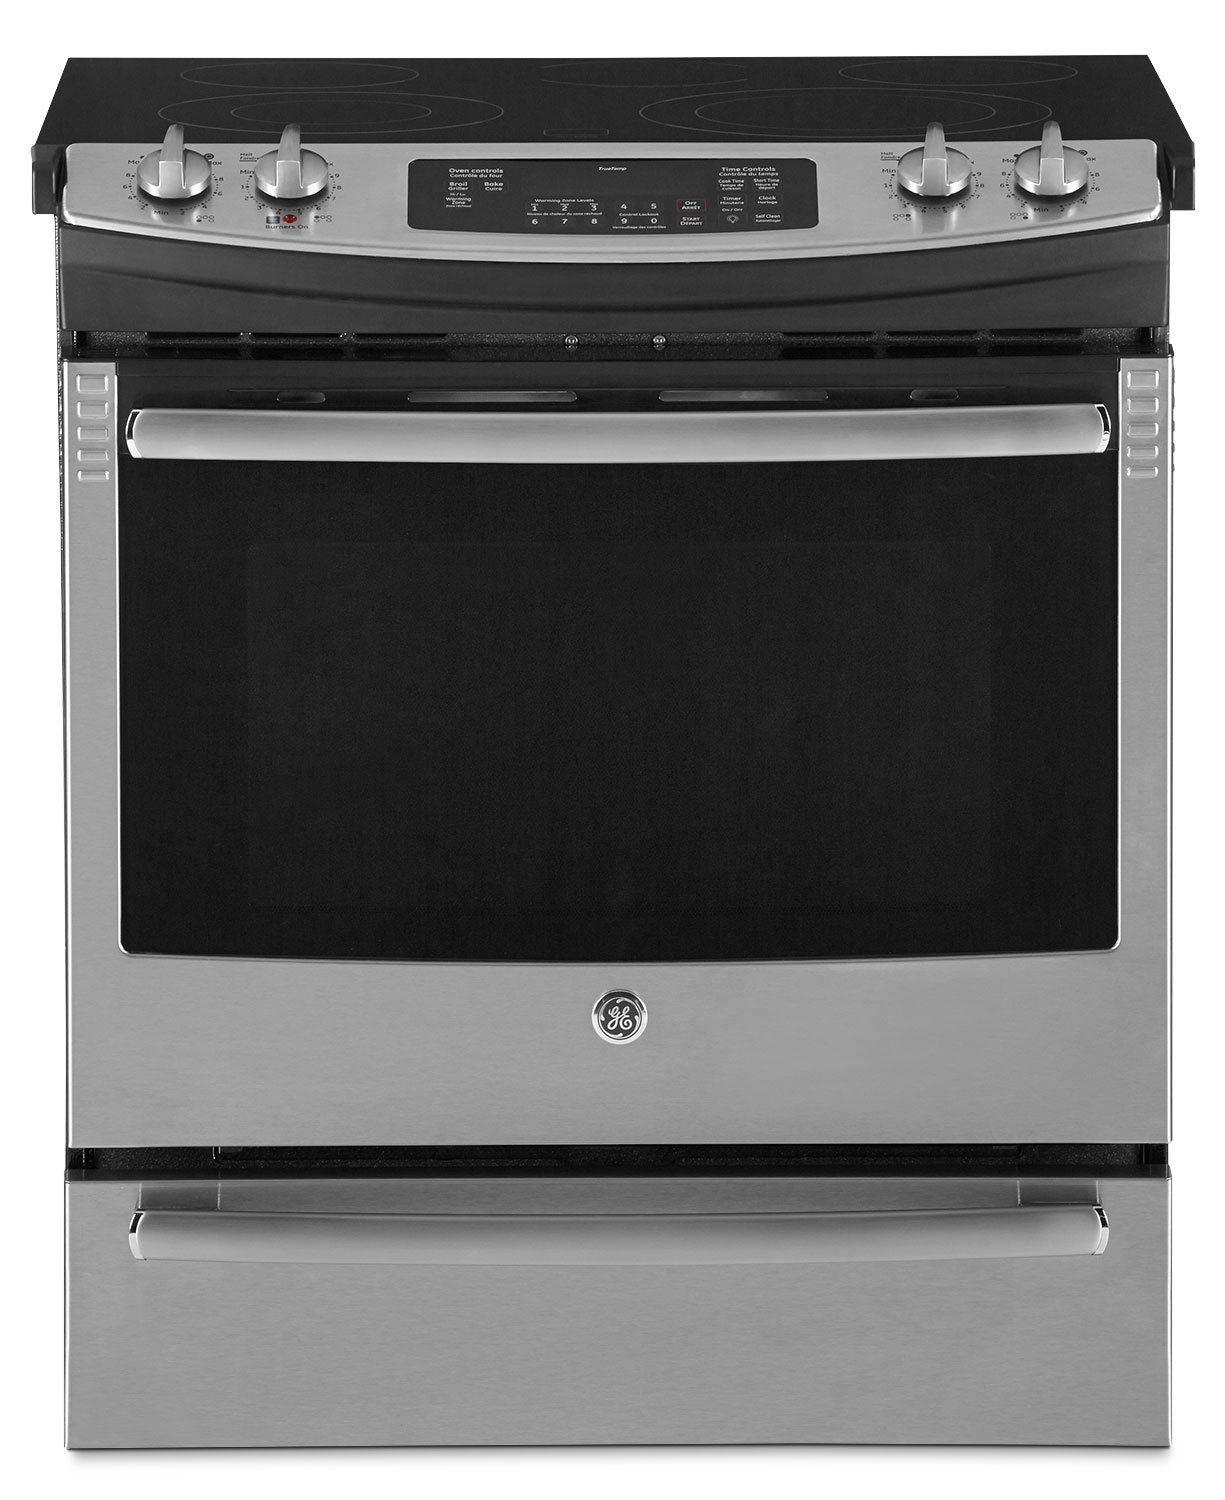 GE Slide In Electric Range JCS630SFSS